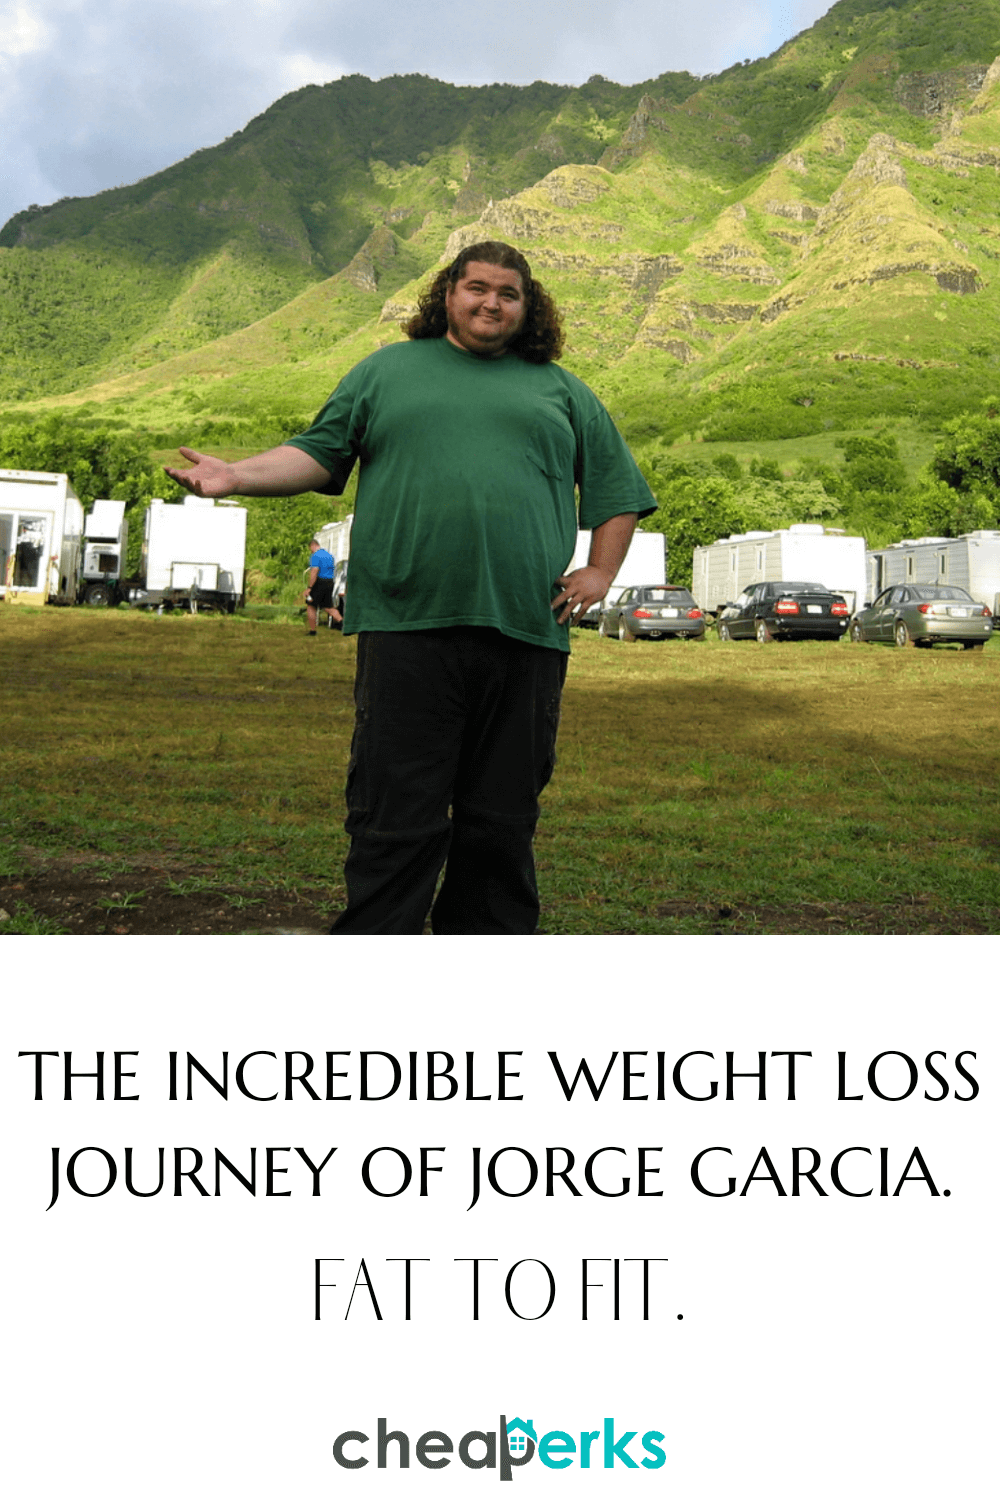 INCREDIBLE WEIGHT LOSS JOURNEY